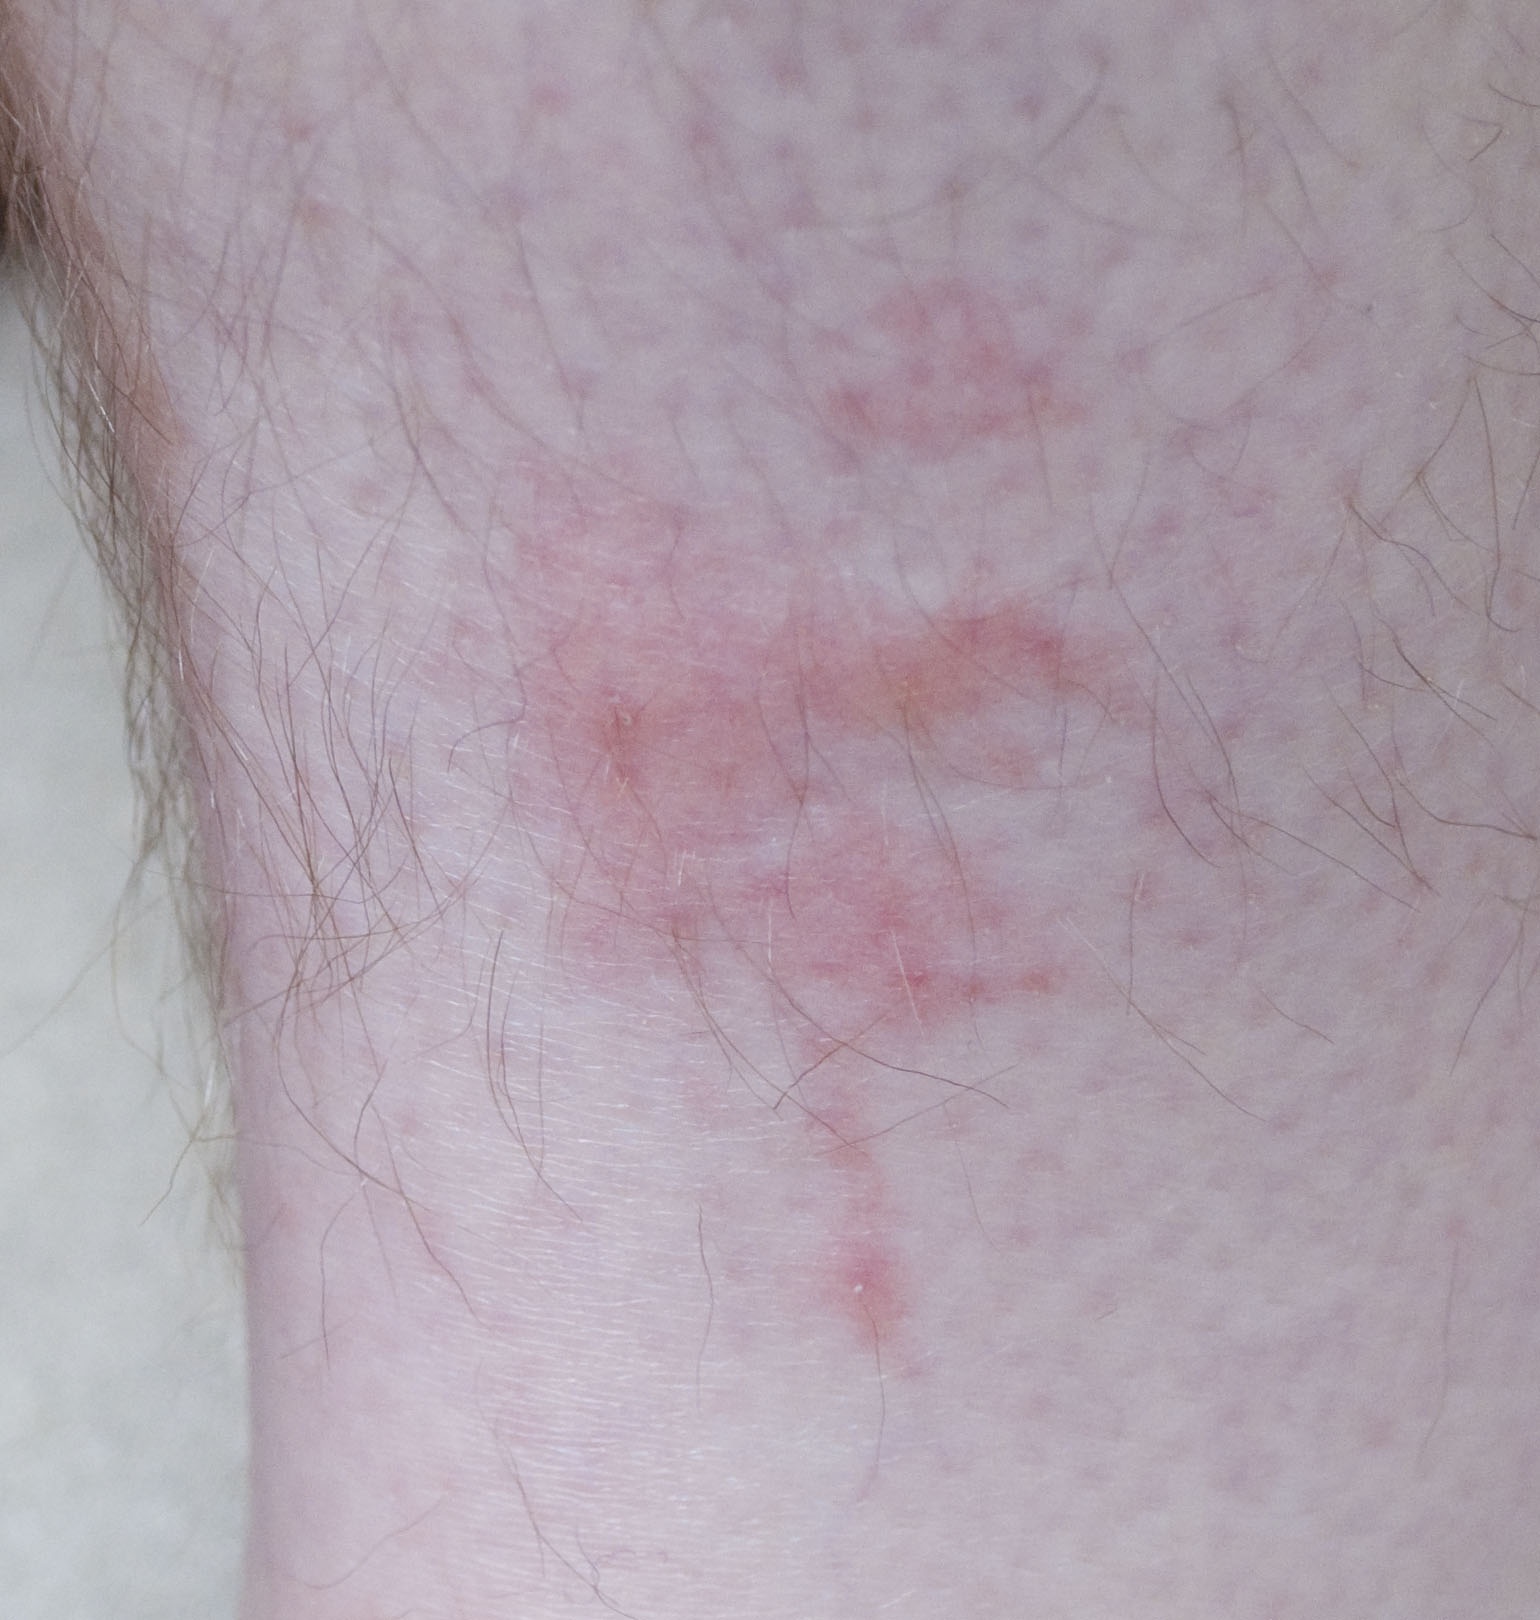 File:Bedbug bites on human leg 1.jpg